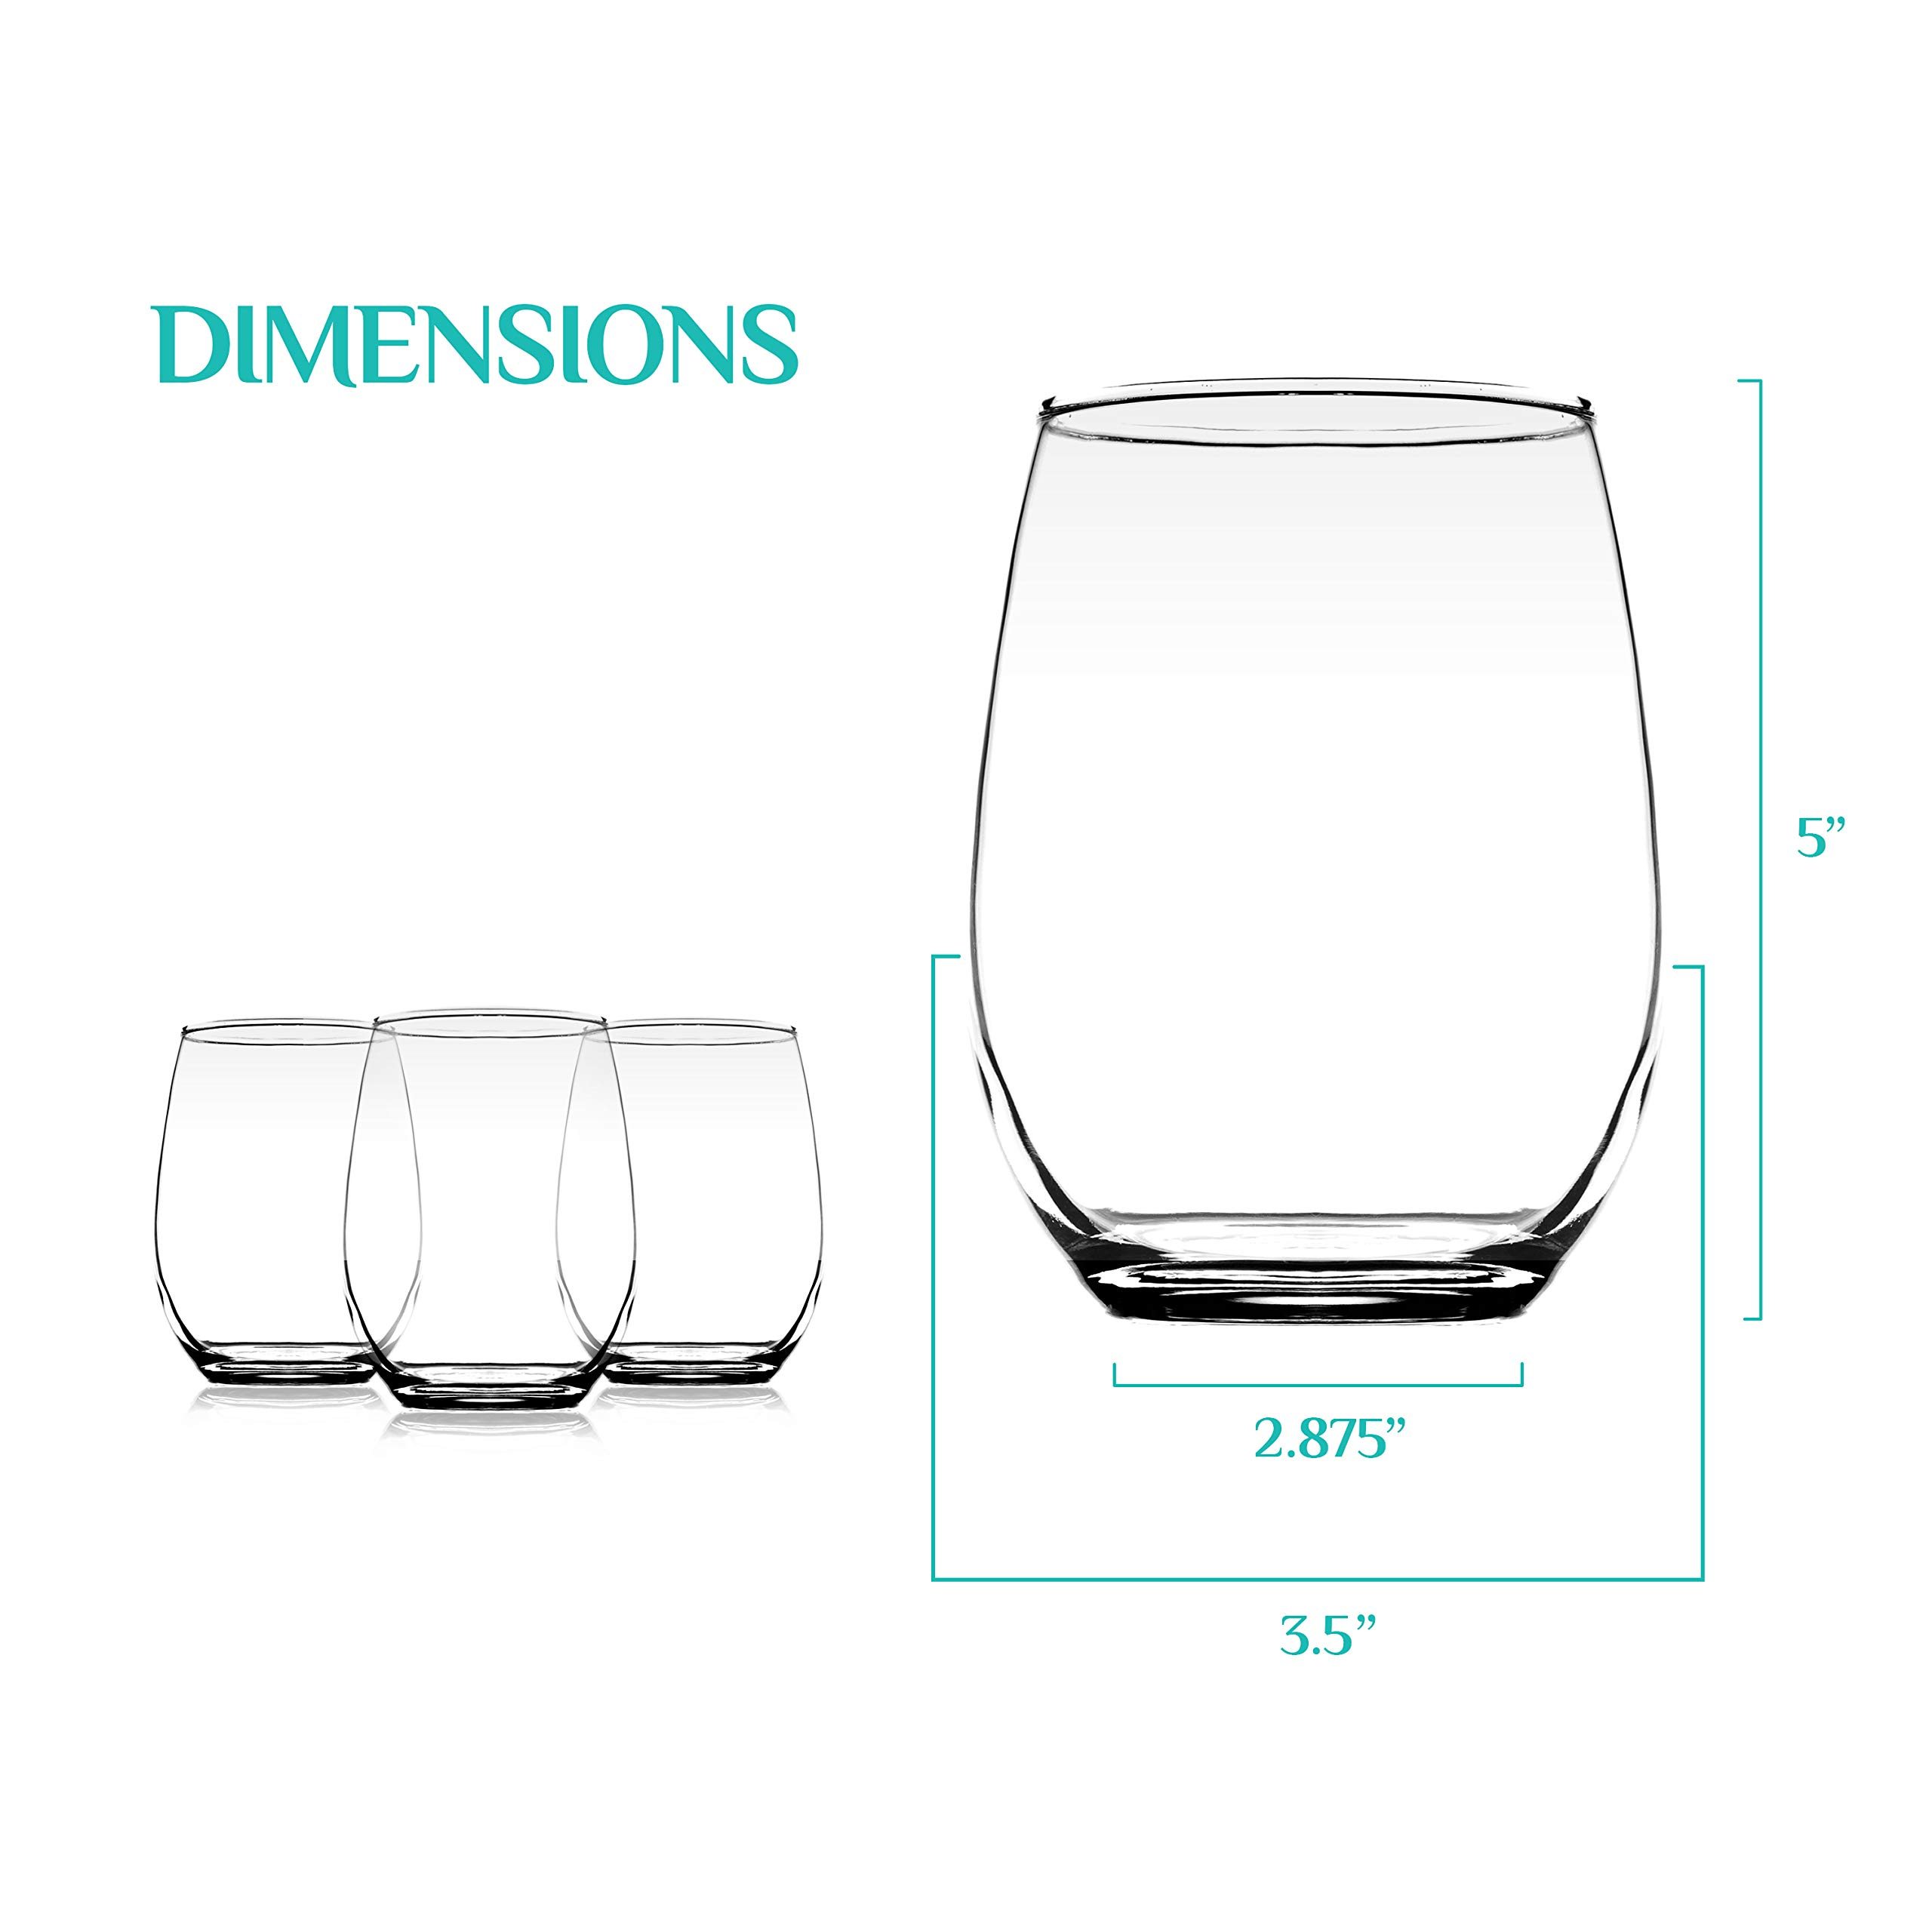 Element Drinkware Stemless Wine Glass 20oz Great For White Or Red Wine - Large Size Durable Chip Resistant Rim Wine Tumbler Premium Drinking Cups Great Gift for Wine Lovers or Crafters - Bulk Set of 6 by Element Drinkware (Image #2)